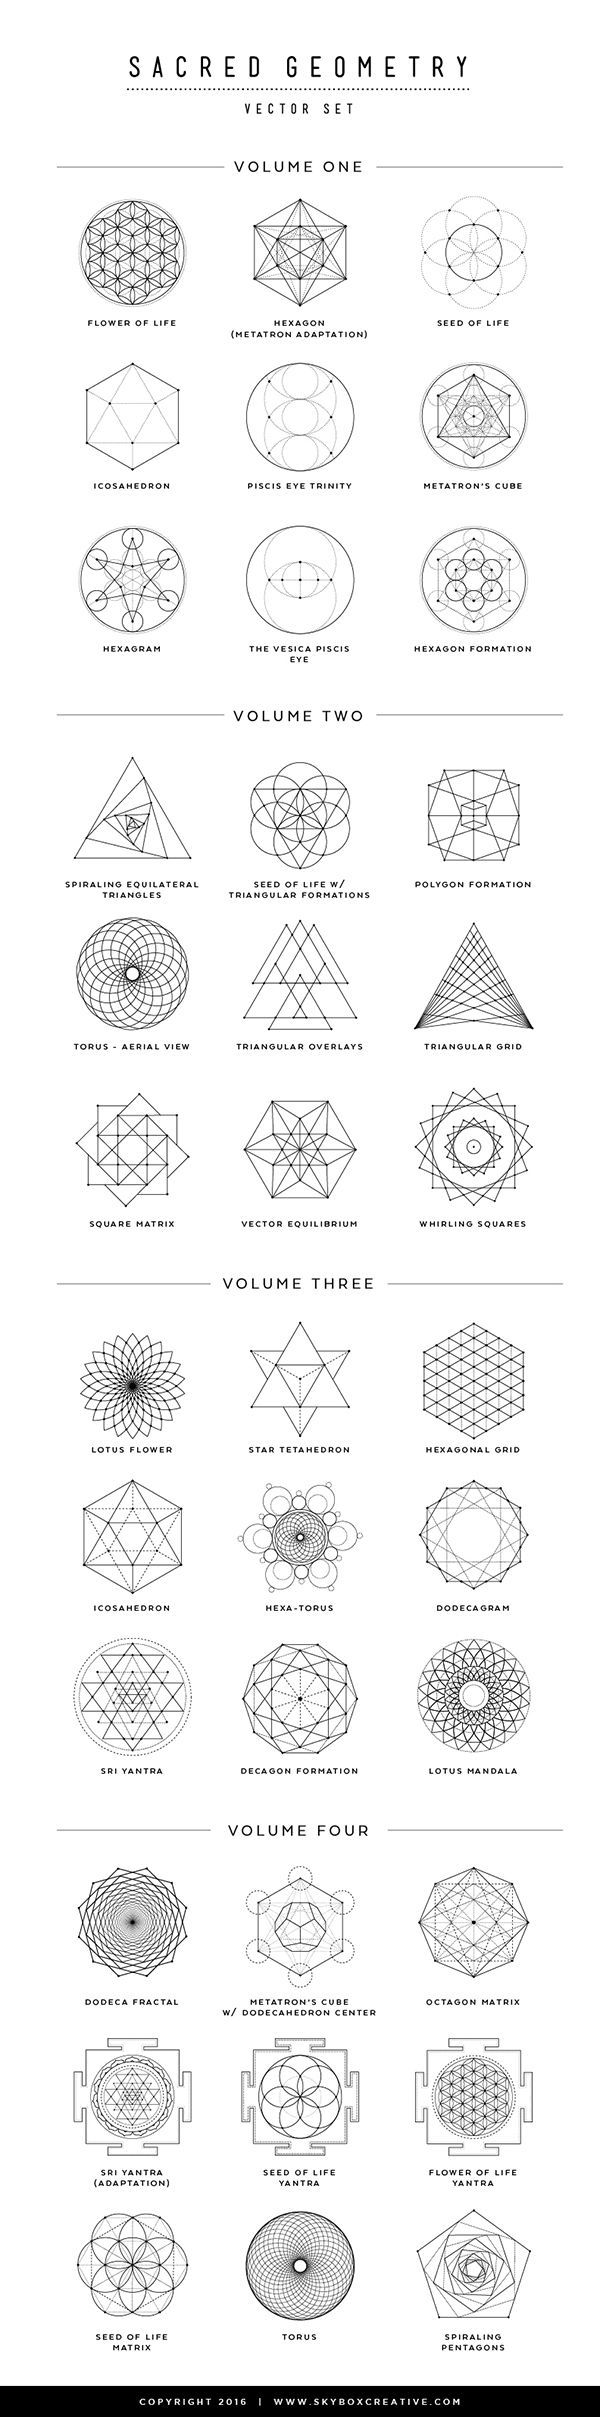 Create a tattoo design free -  I Created This Pdf Guide And Short Video To Go Over A Few Sacred Geometry